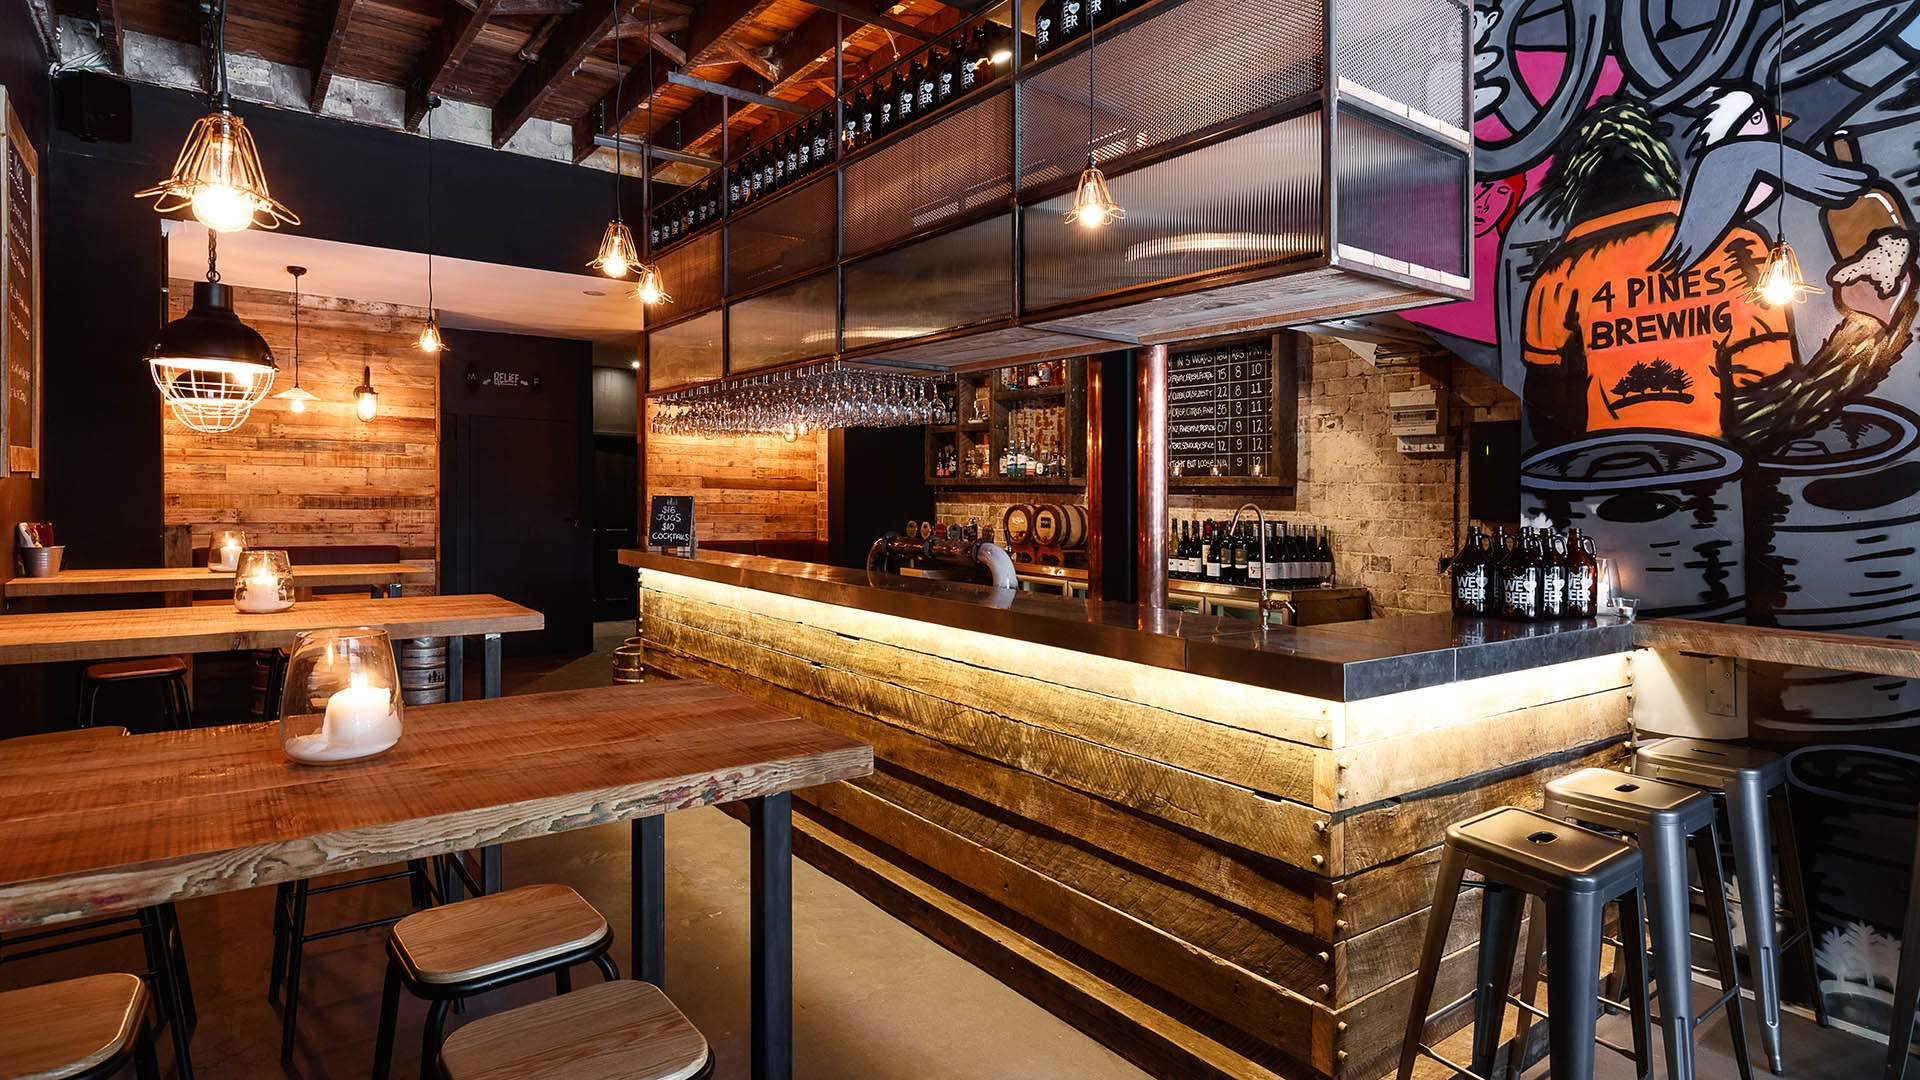 4 Pines Brewing Has Opened a Small Beer and Burger Joint in Surry Hills